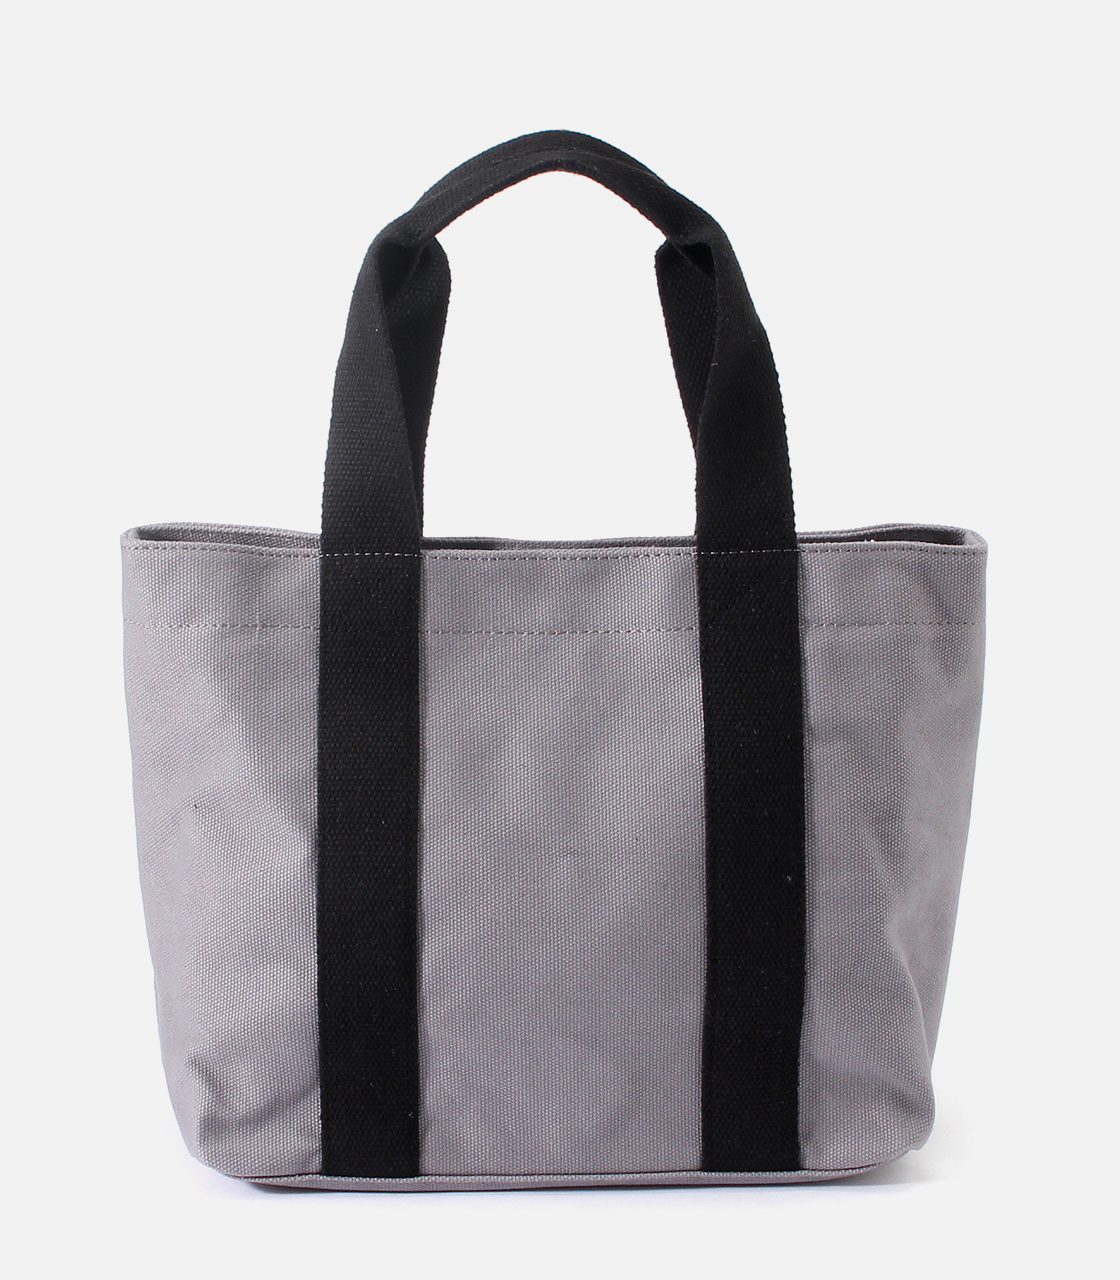 CAMPUS MINI TOTE BAG/キャンバスミニトートバッグ 詳細画像 C.GRY 2